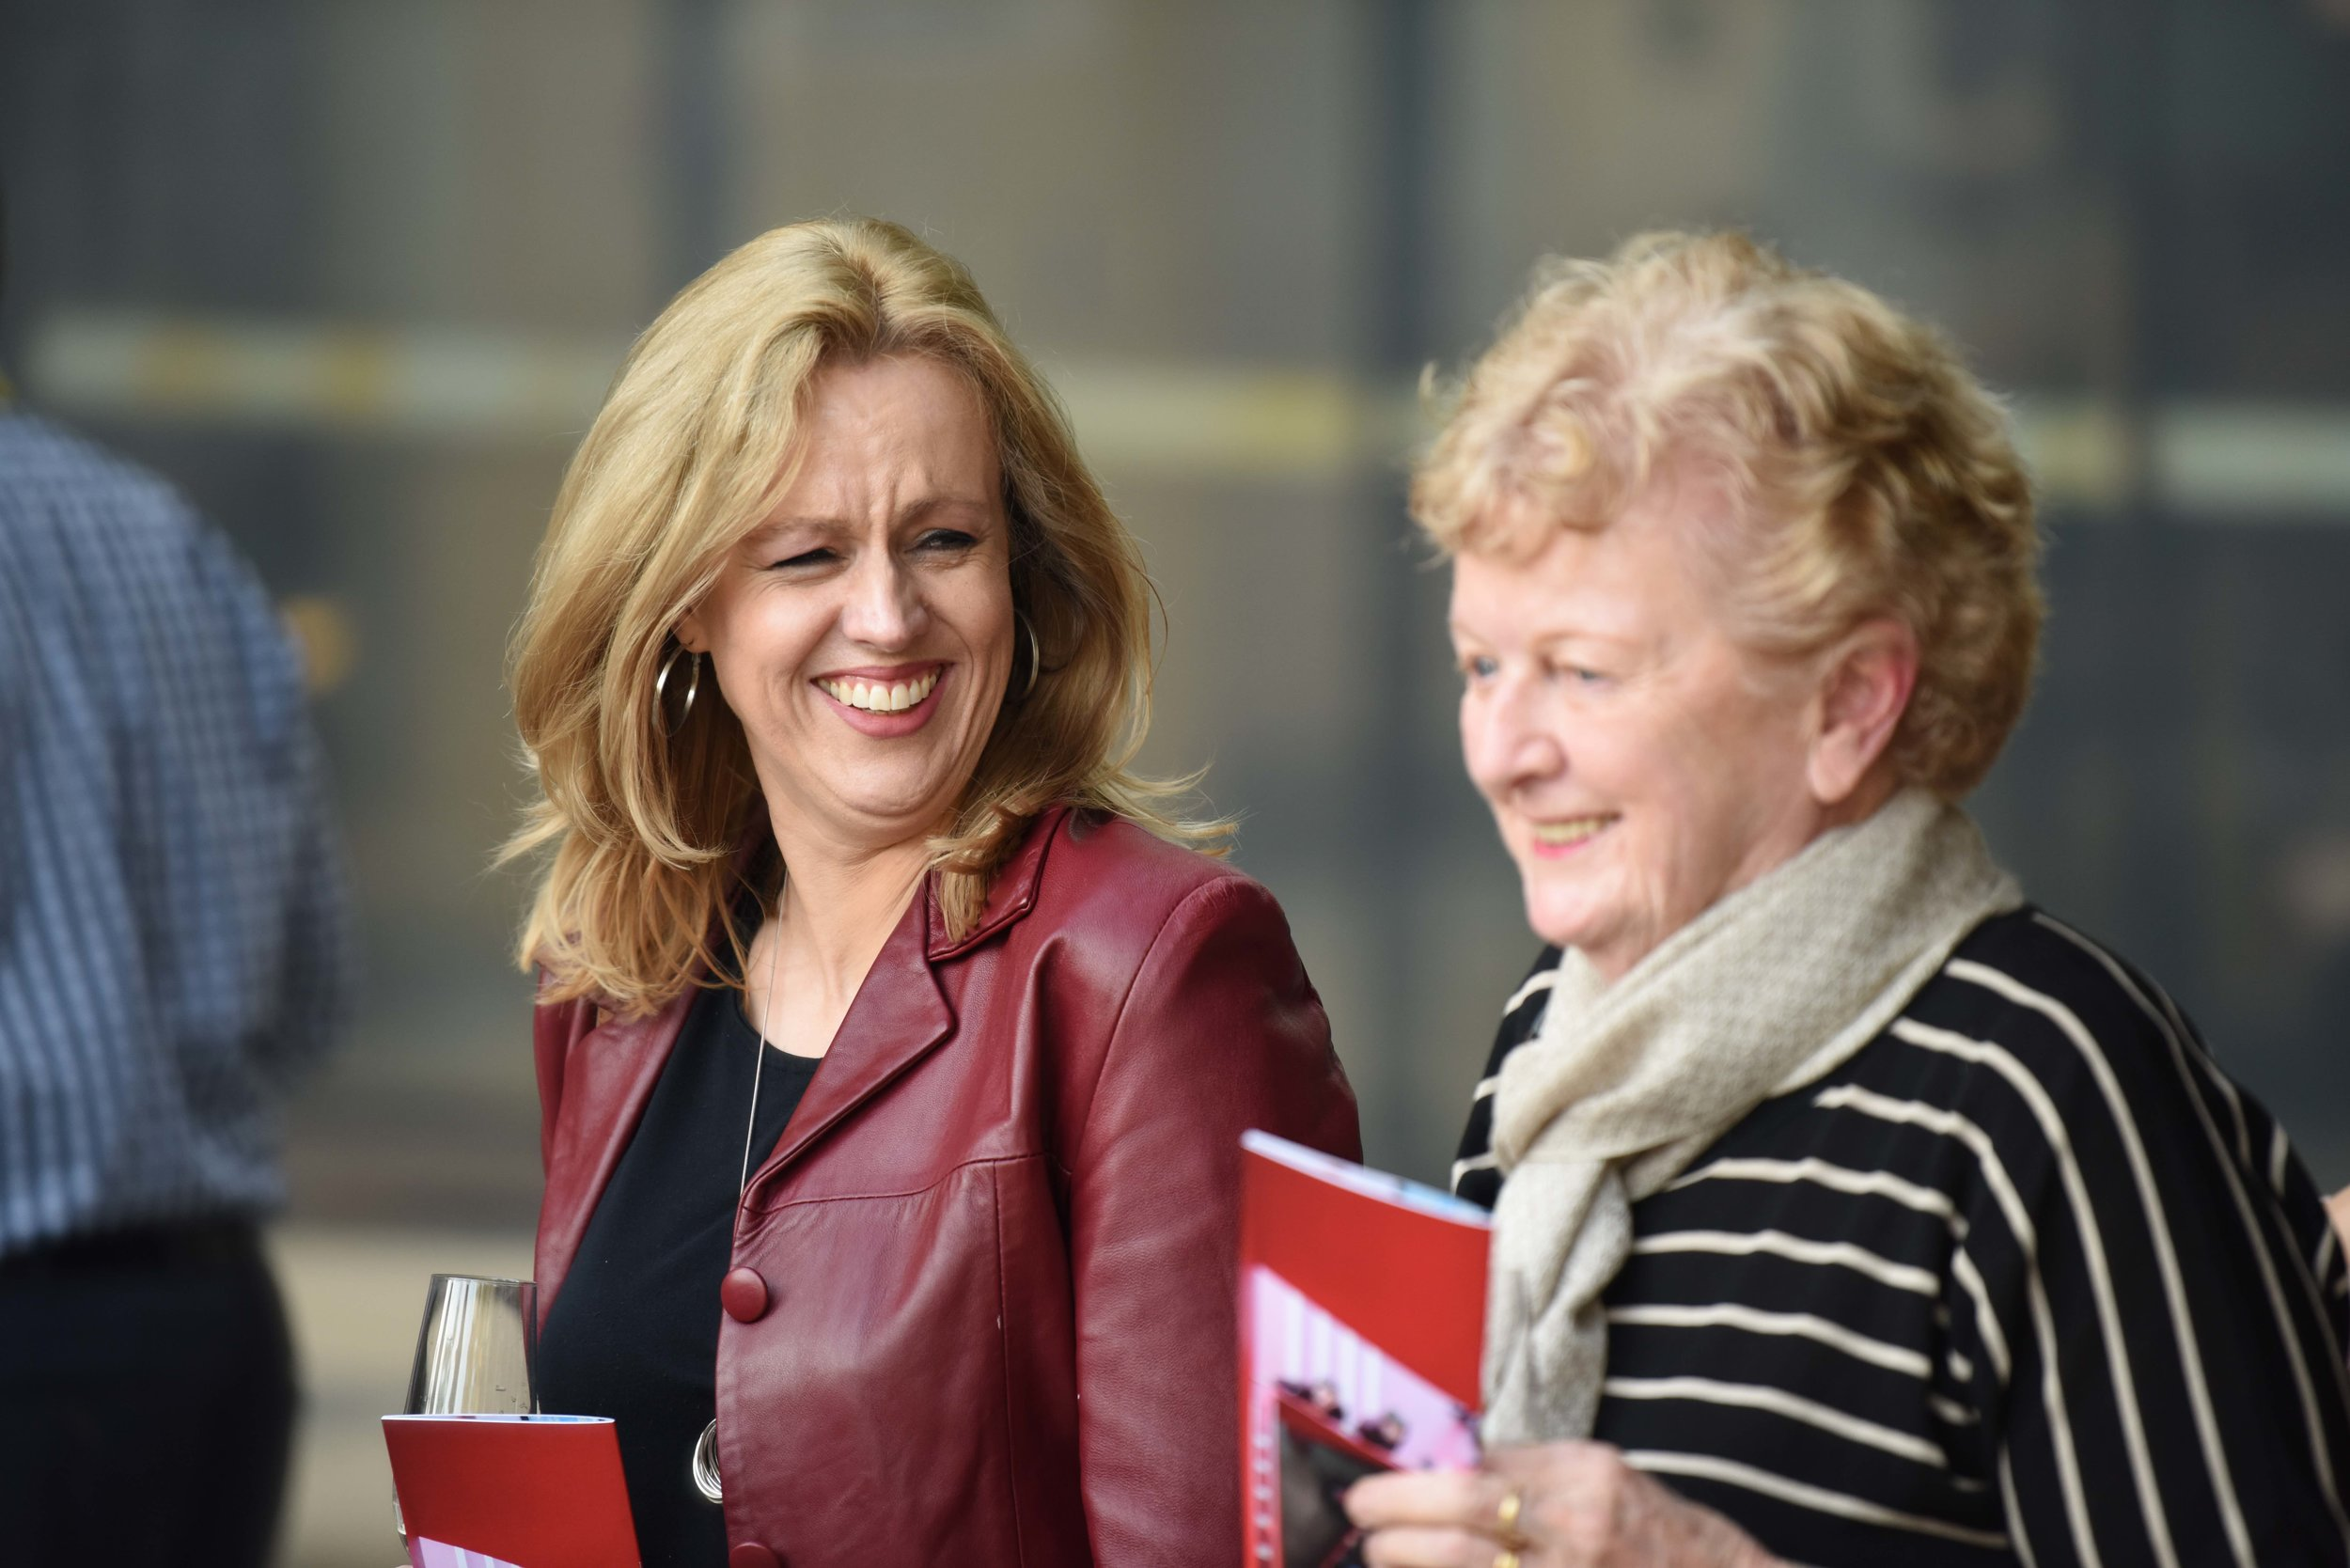 Maureen Hegarty (Left) and Joan McLachlan sharing a funny moment at Marcellin